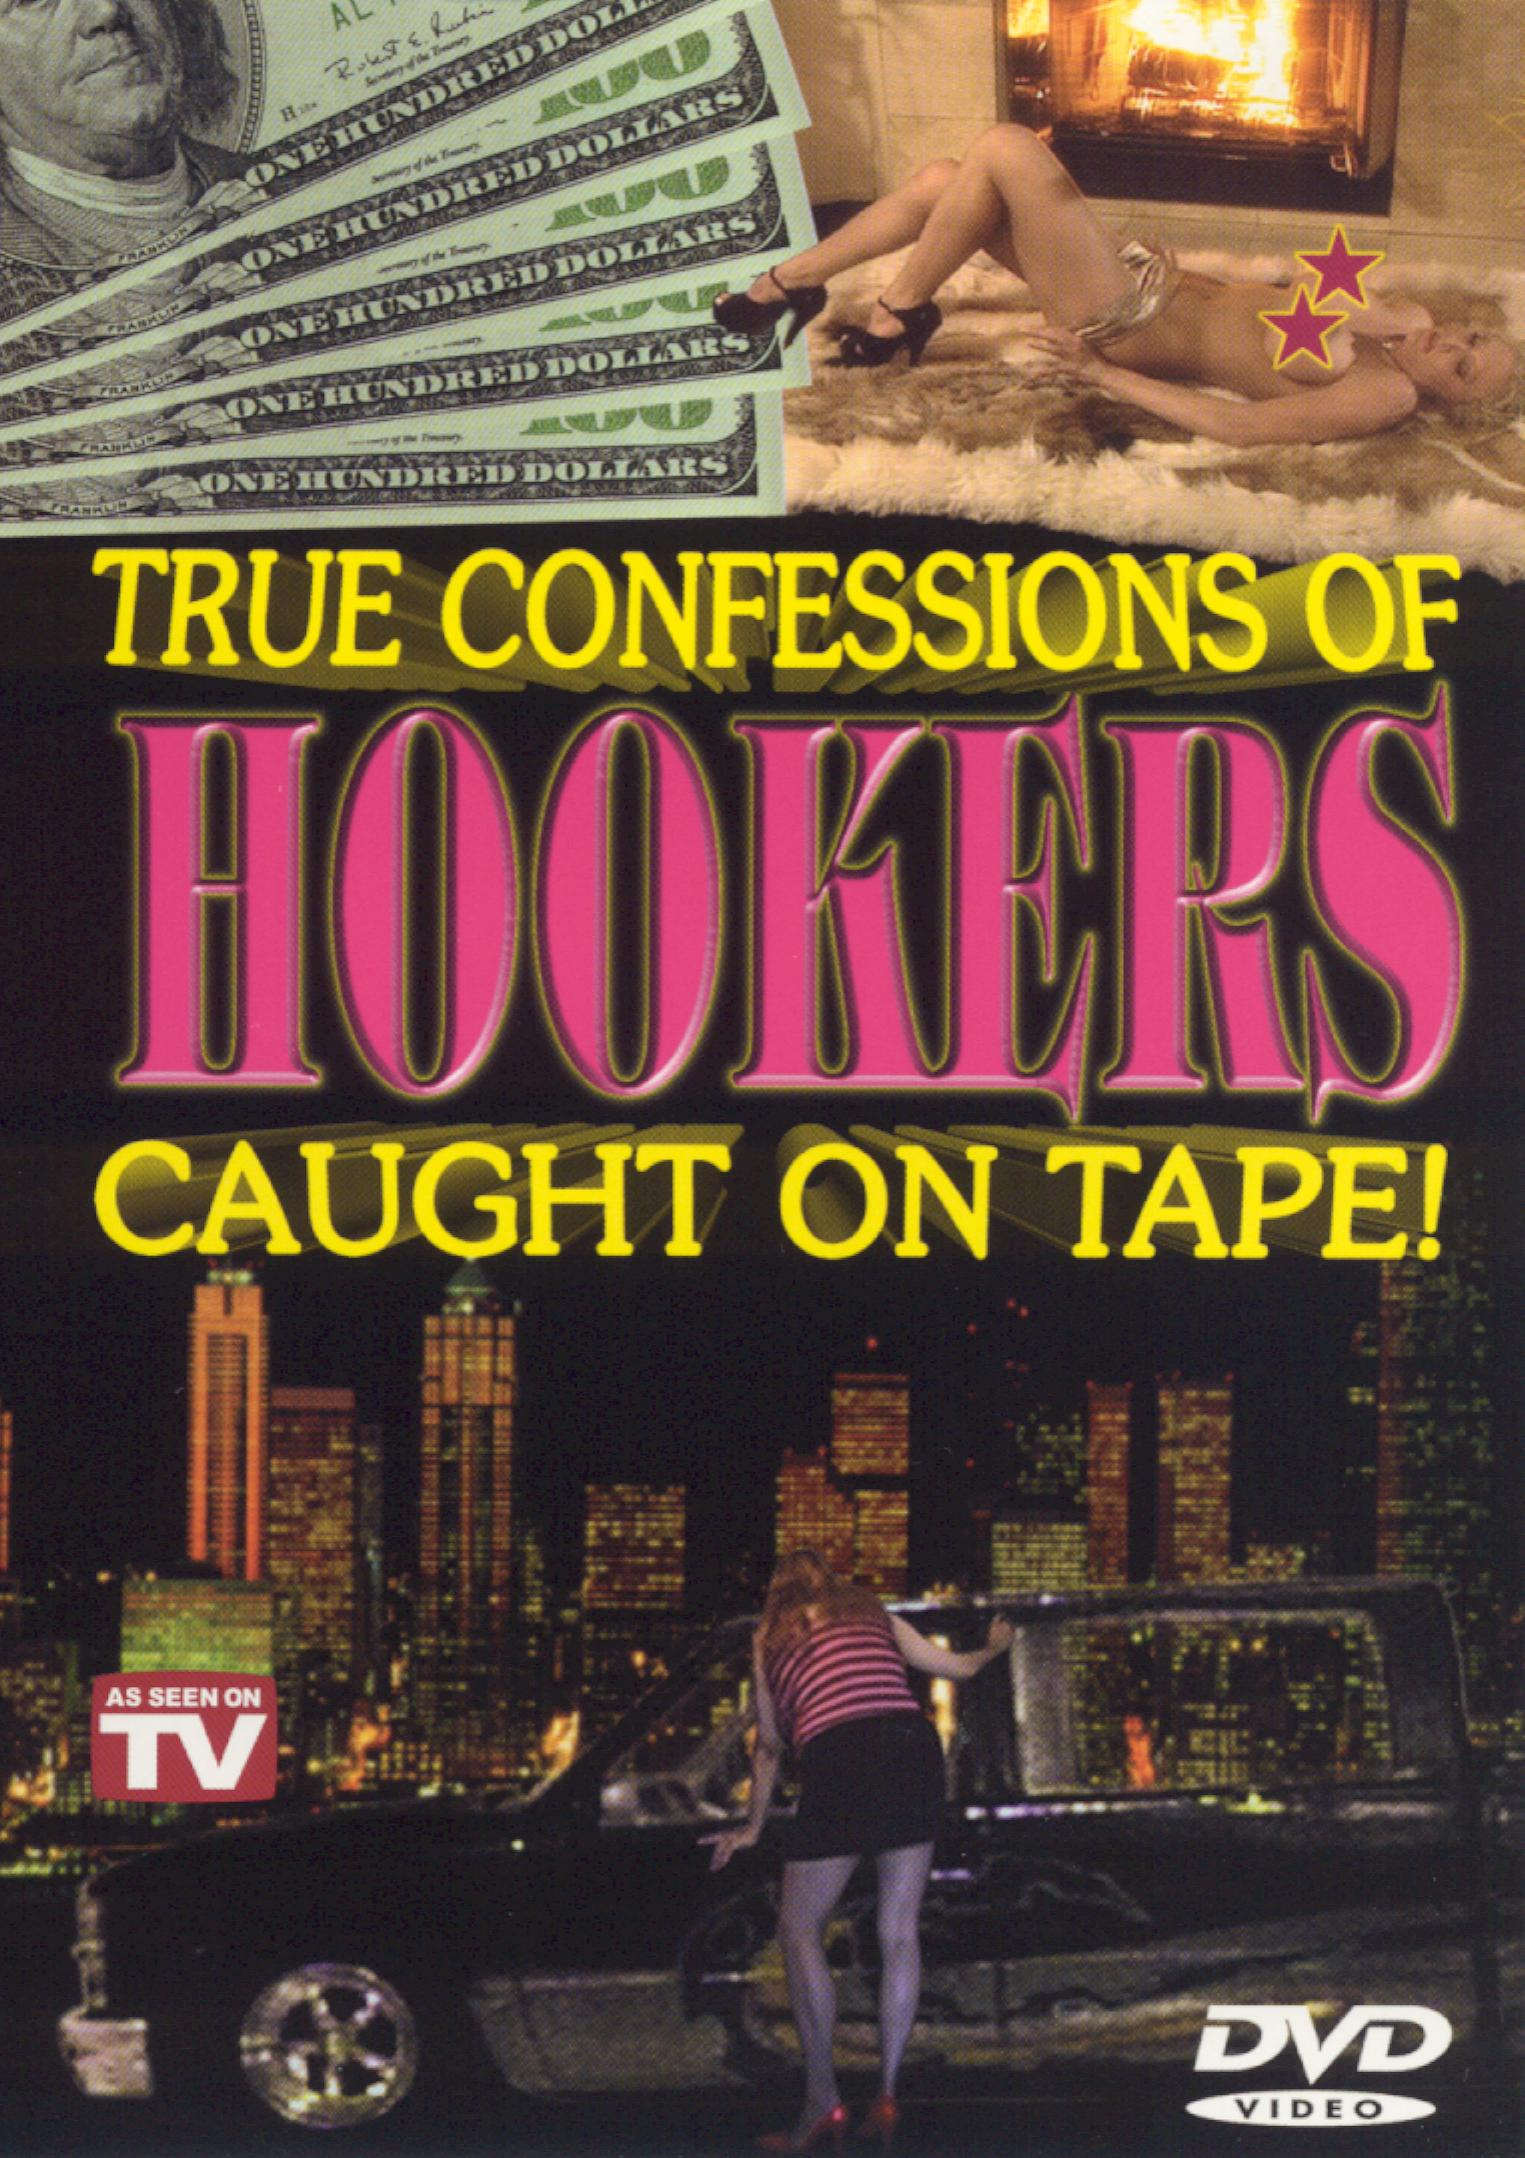 Caught on Tape: True Confessions of Hookers